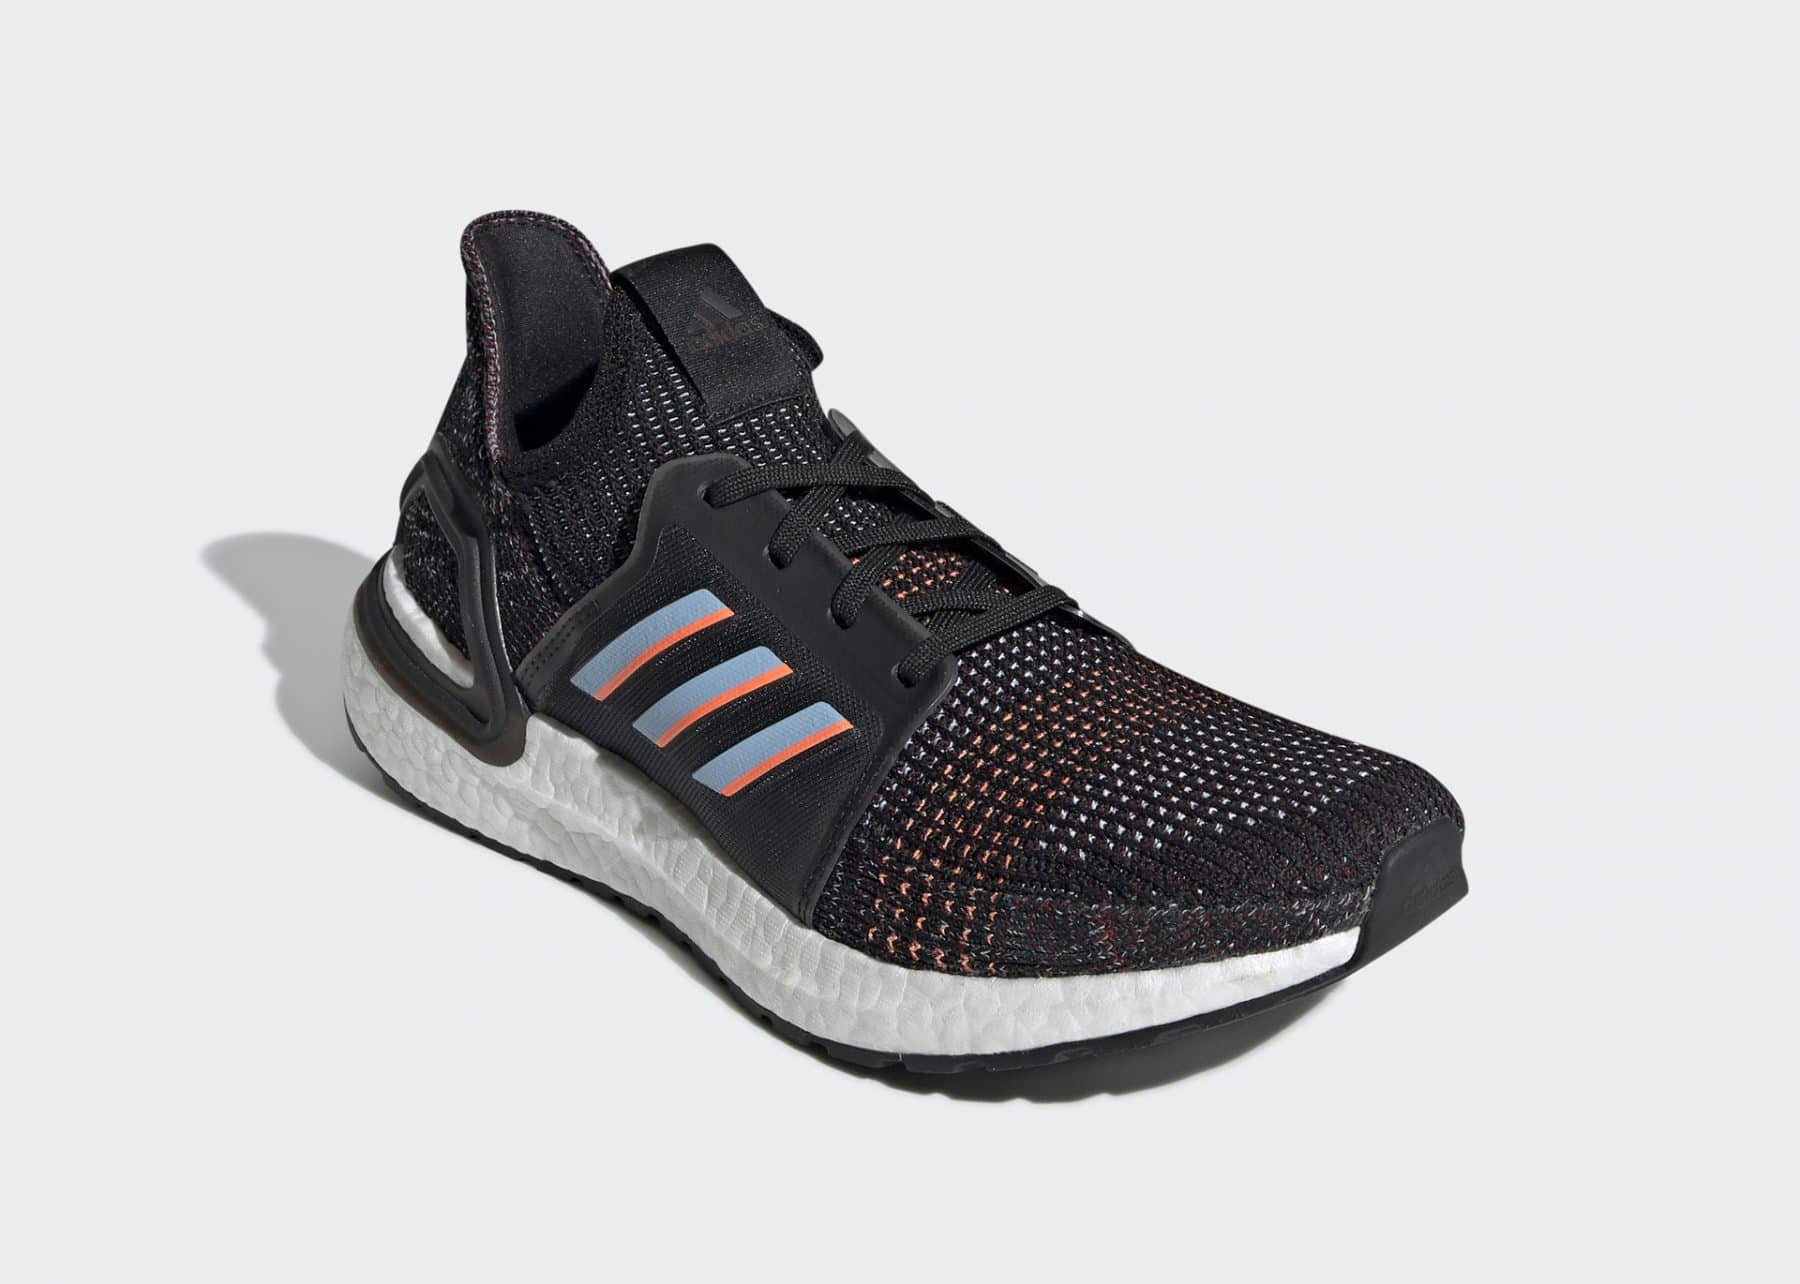 new product fe458 d1bc7 Adidas Launches 'Feel The Boost' Campaign with New ...